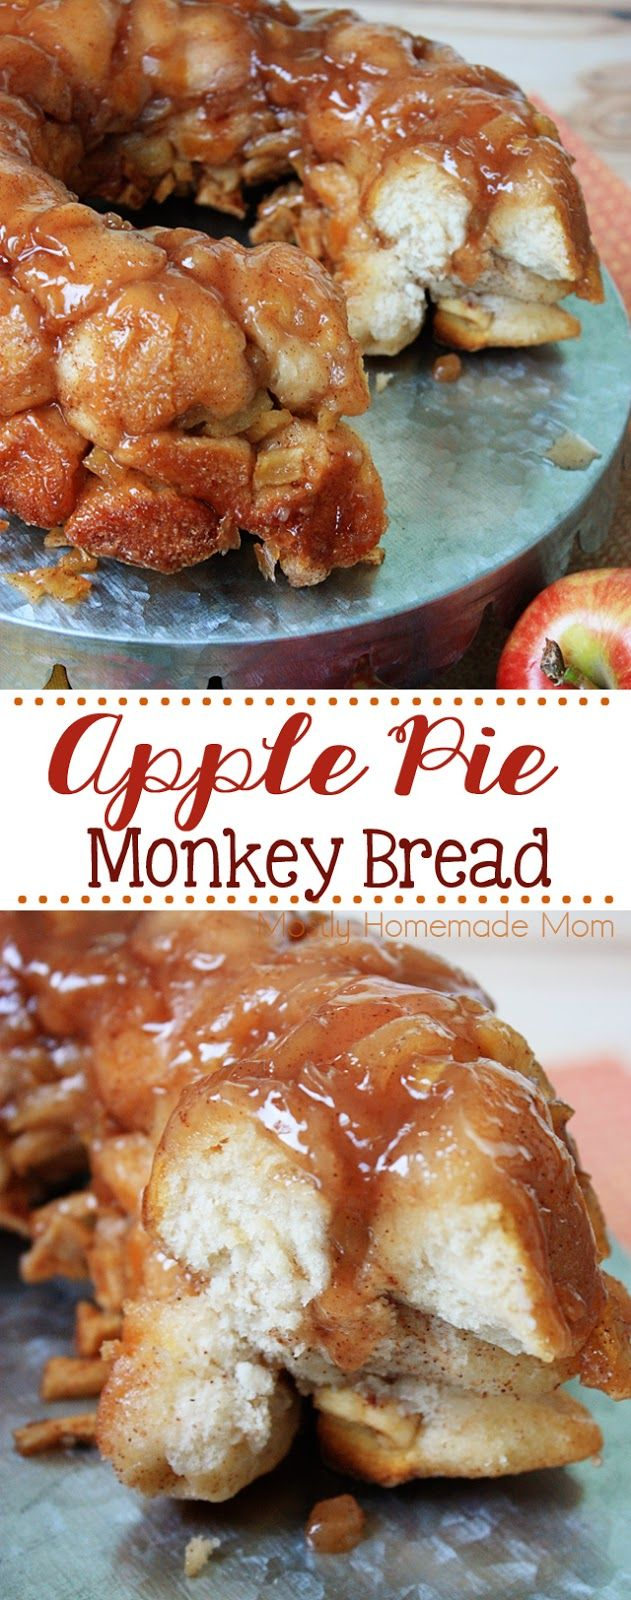 Apple Pie Monkey Bread - so gooey and sweet! Refrigerated biscuits tossed with sugar, cinnamon, and chopped apples make this a perfect fall brunch or dessert recipe!